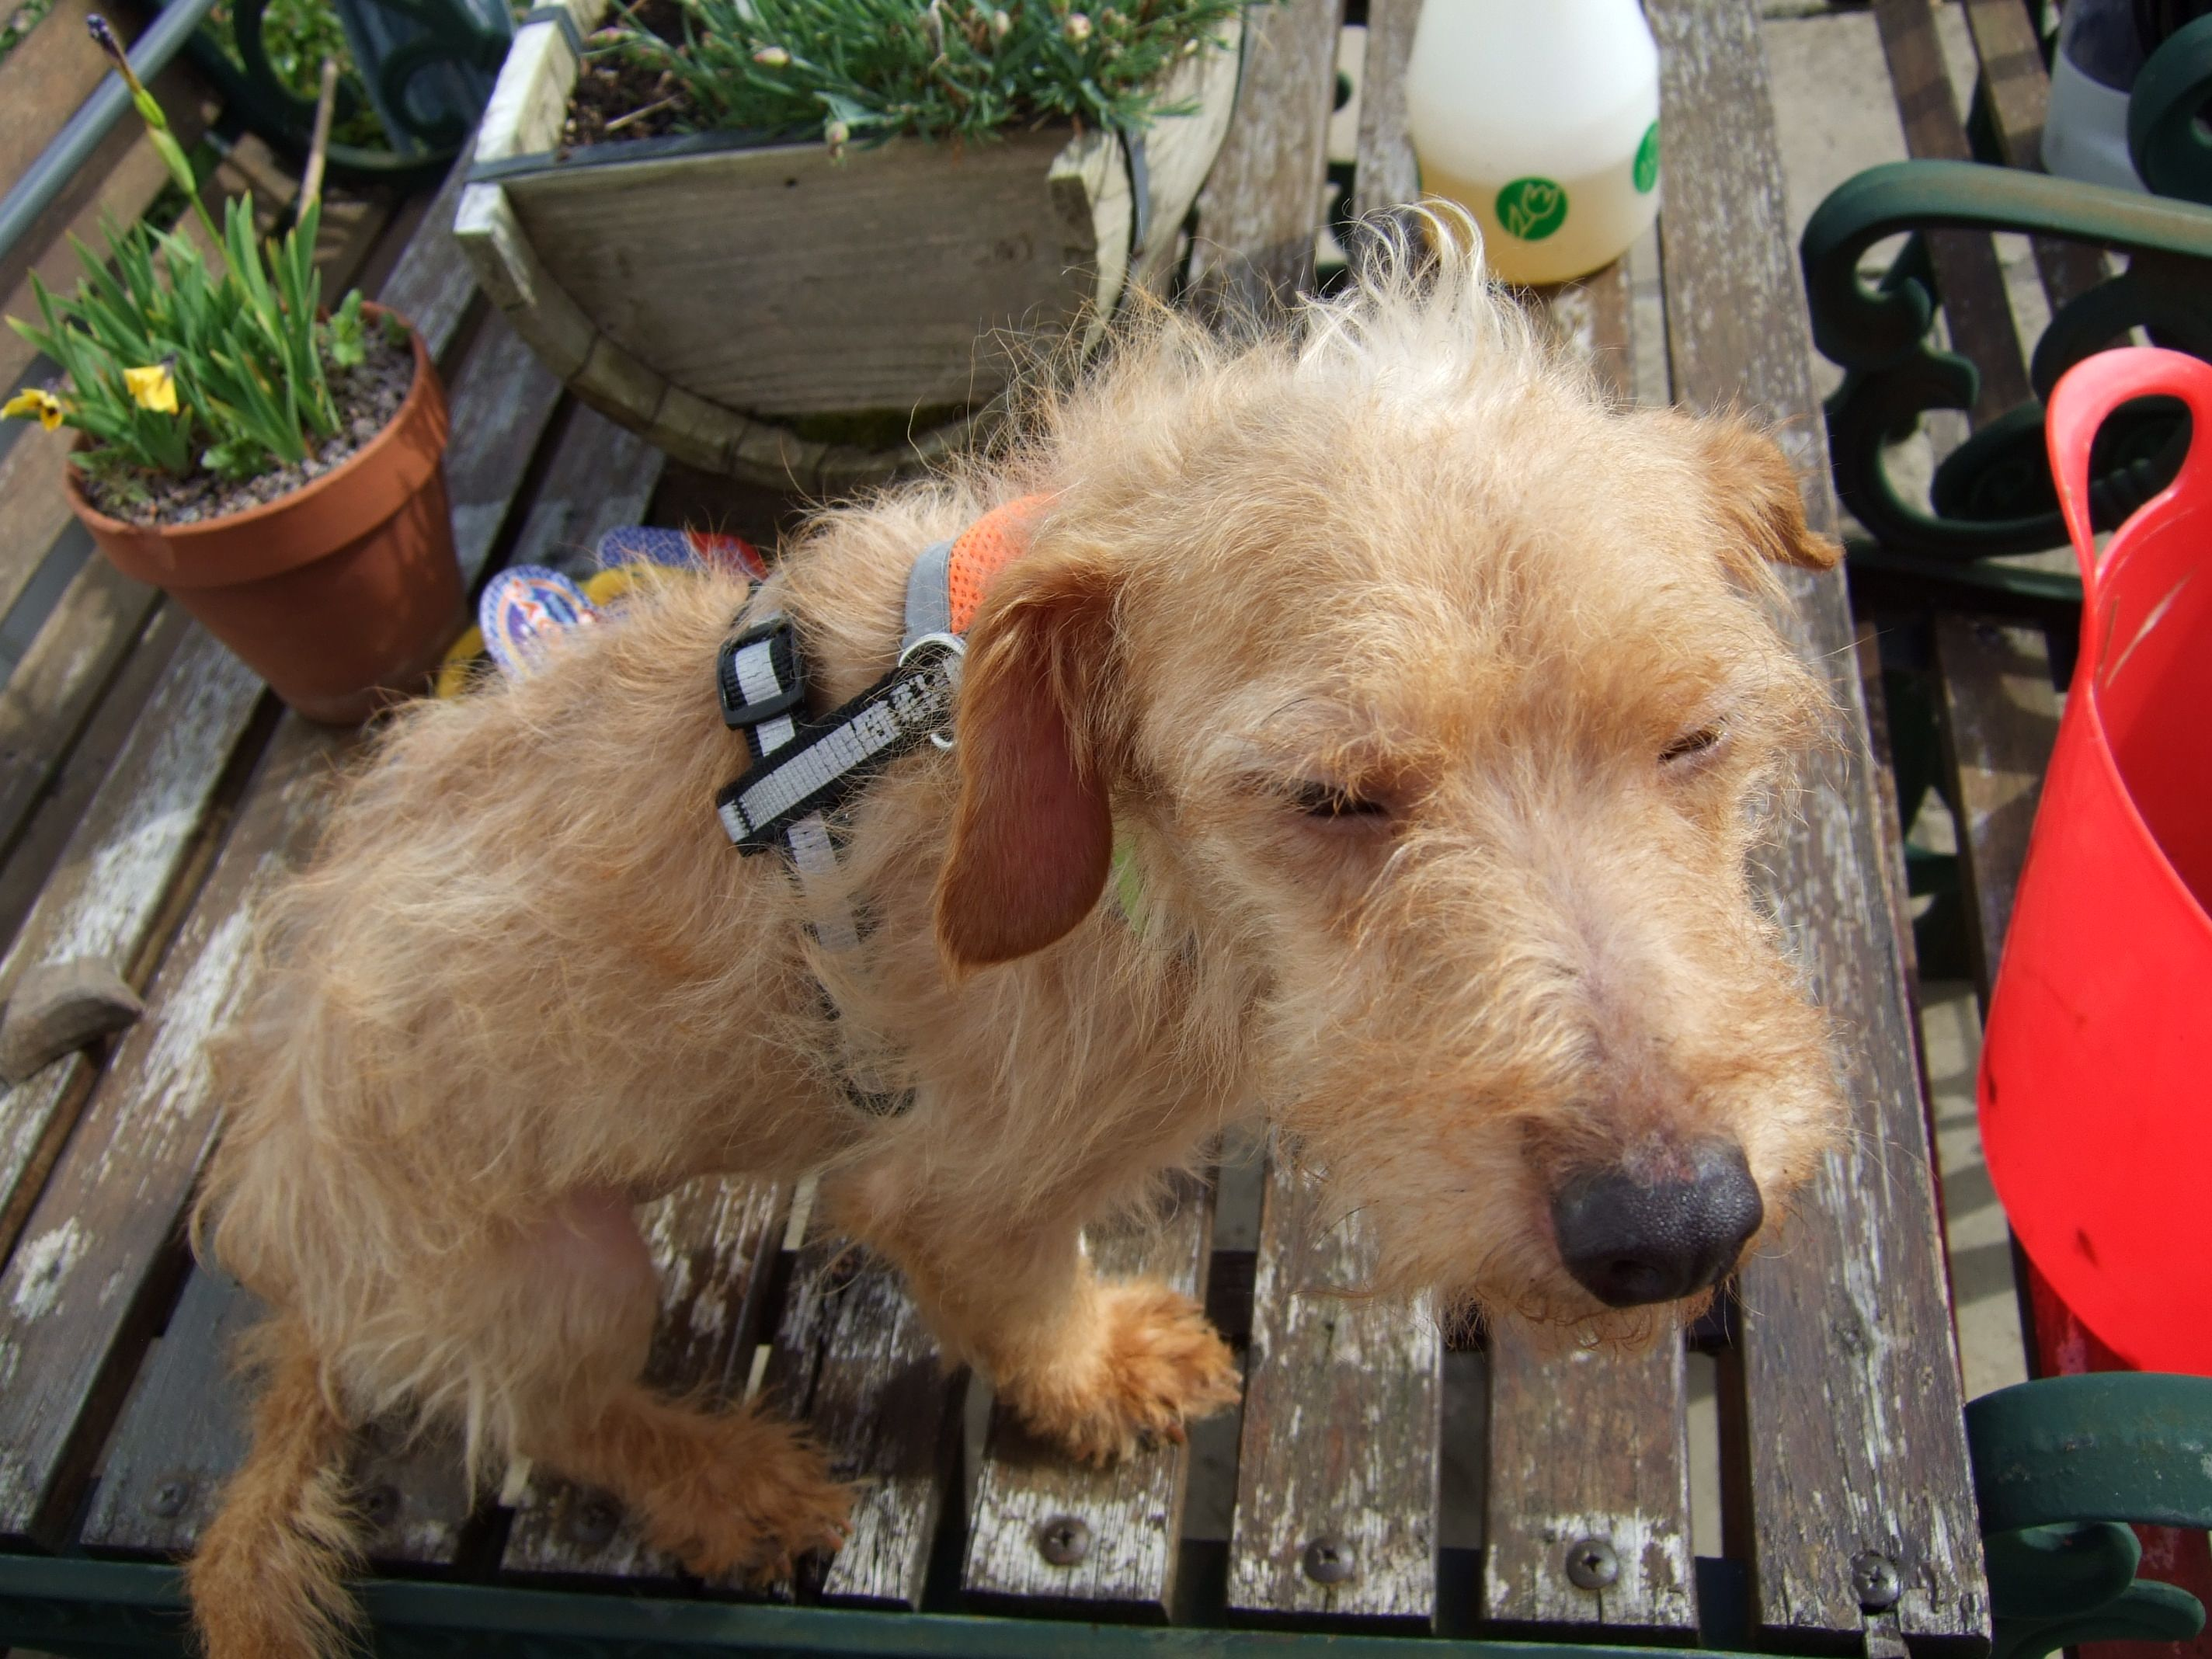 Toby A Rescued Podengo From Portugal Arrived Very Worried And Shut Down Animals Dogs Goats